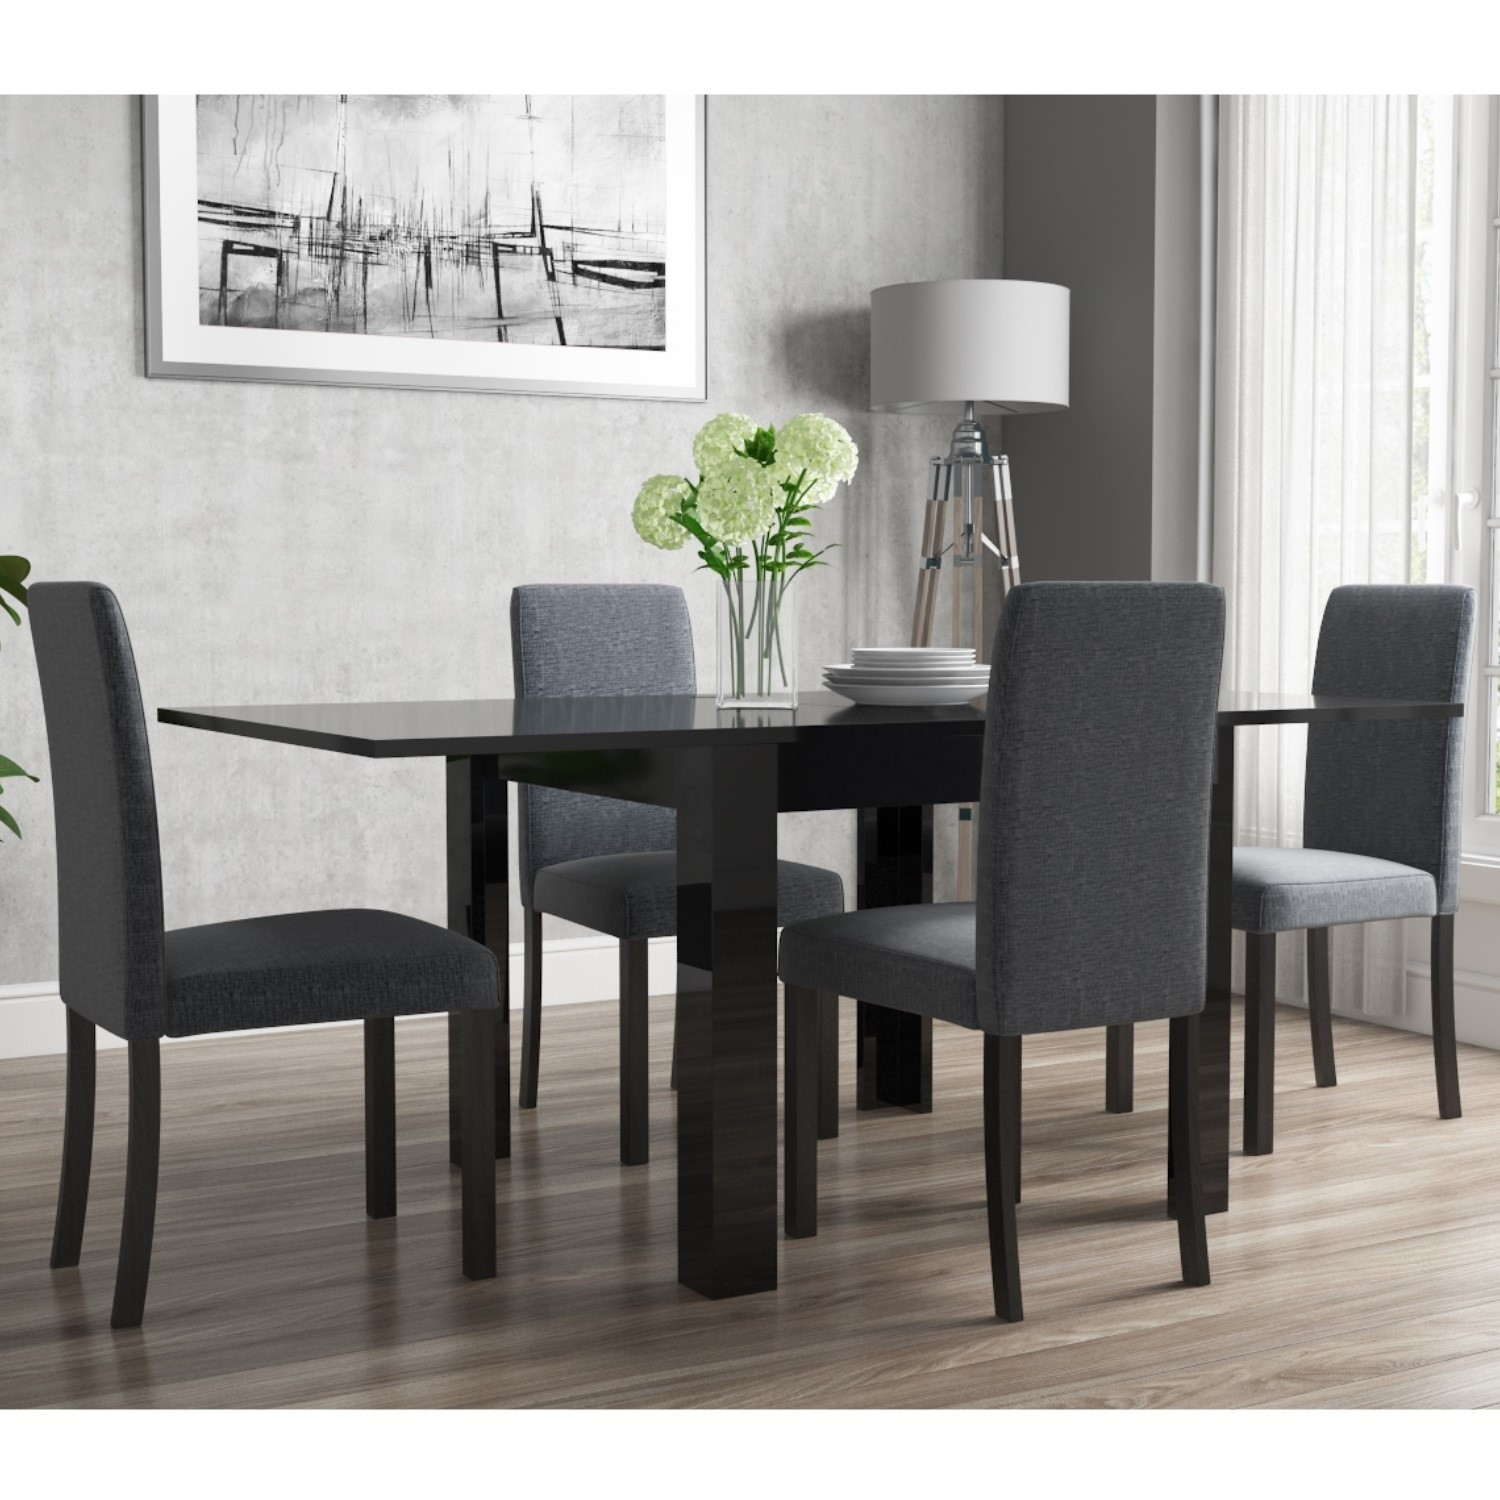 Flip Top Dining Table In Black High Gloss With 4 Slate Grey Chairs Vivienne New Haven Furniture123